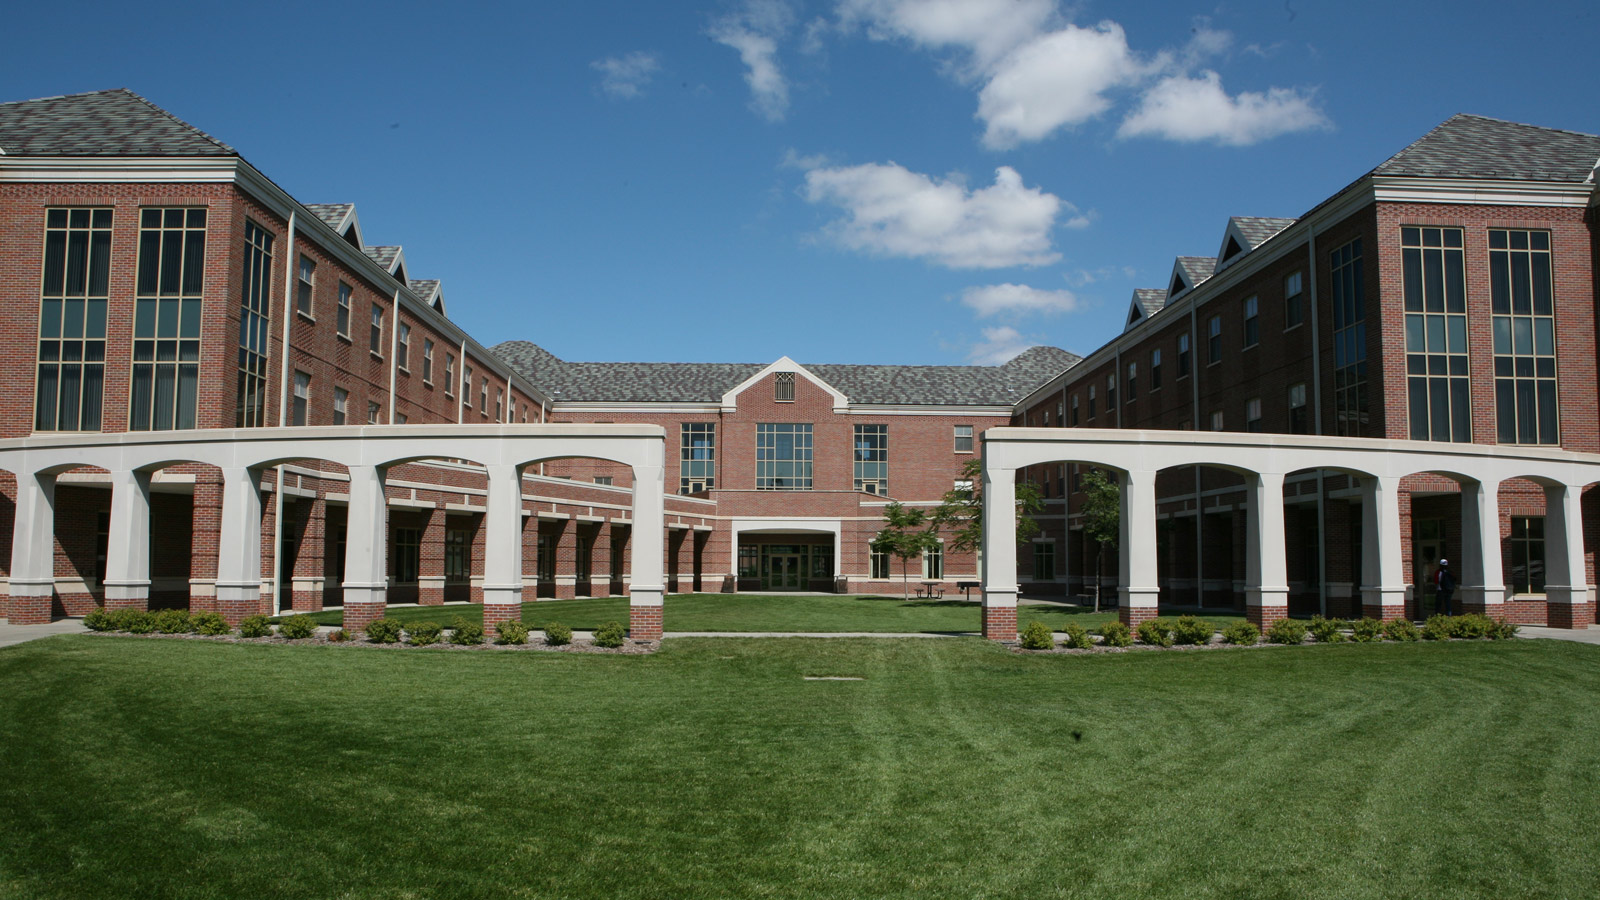 Kauffman Residential Center